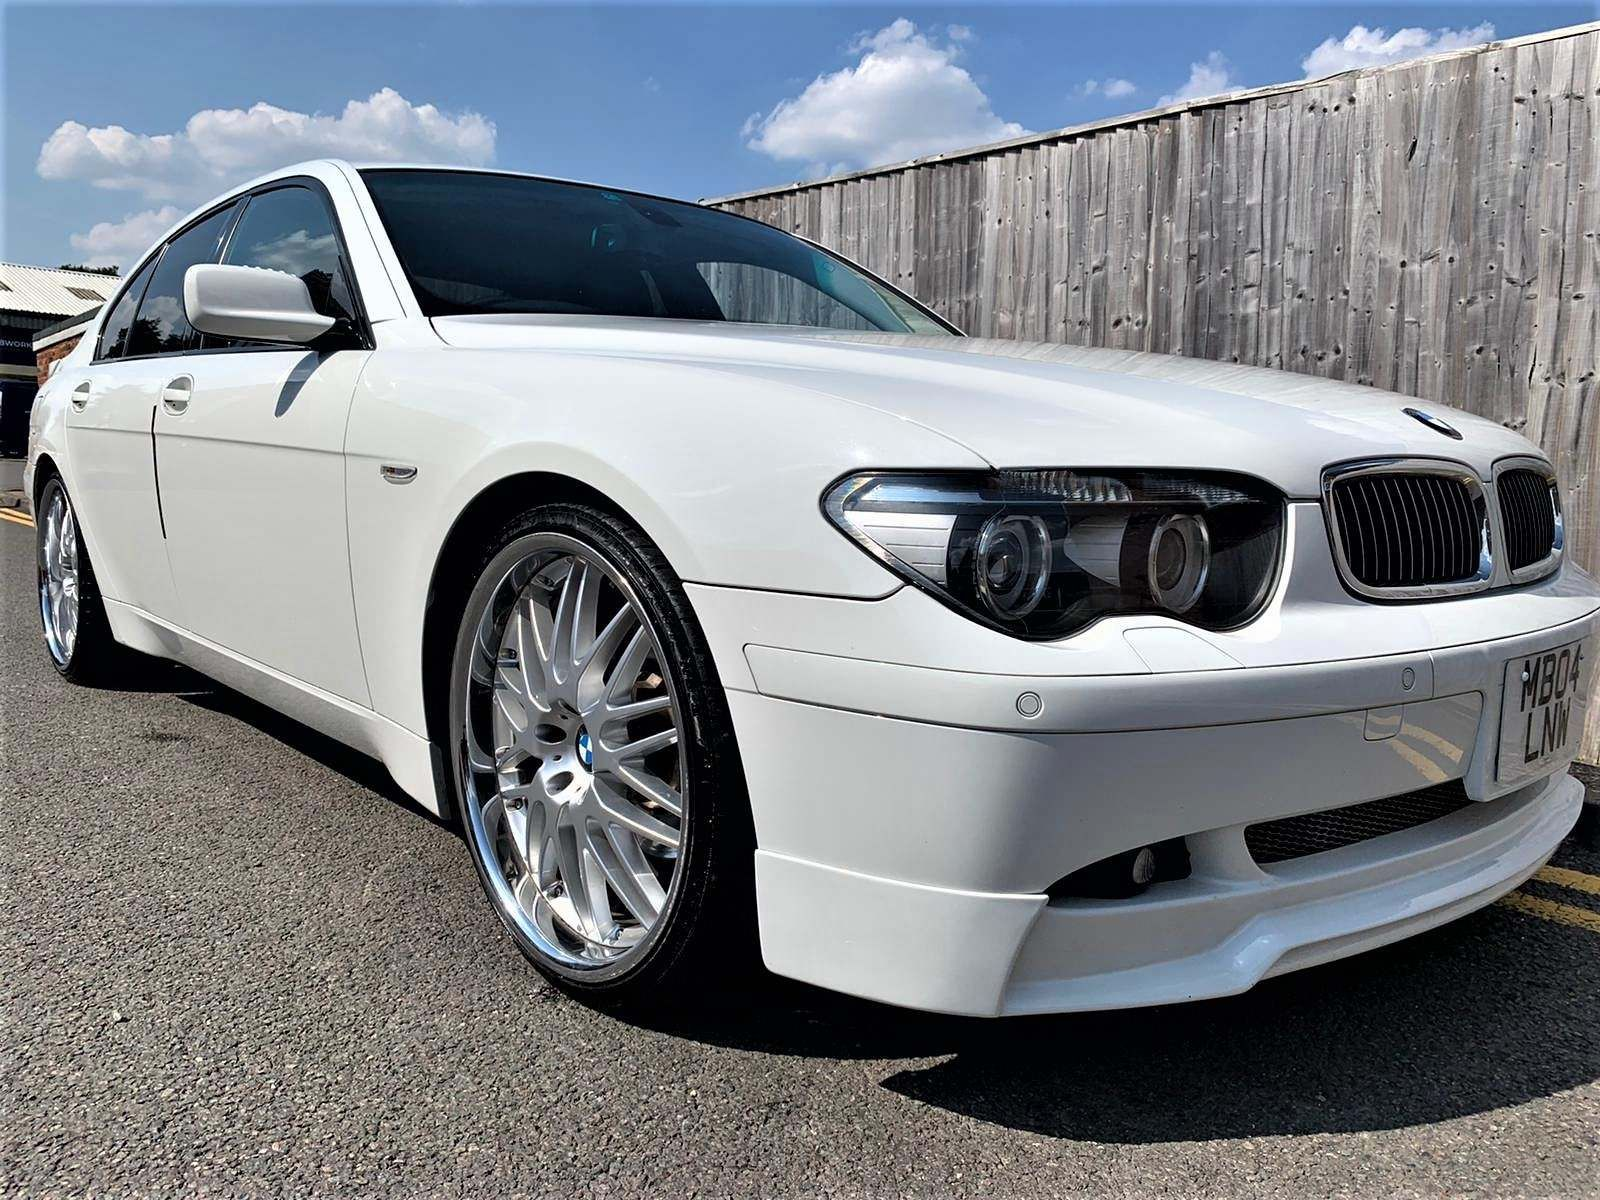 2004 (04) BMW 7 Series 4.4 745i Sport 4dr Auto For Sale In Chesham, Buckinghamshire